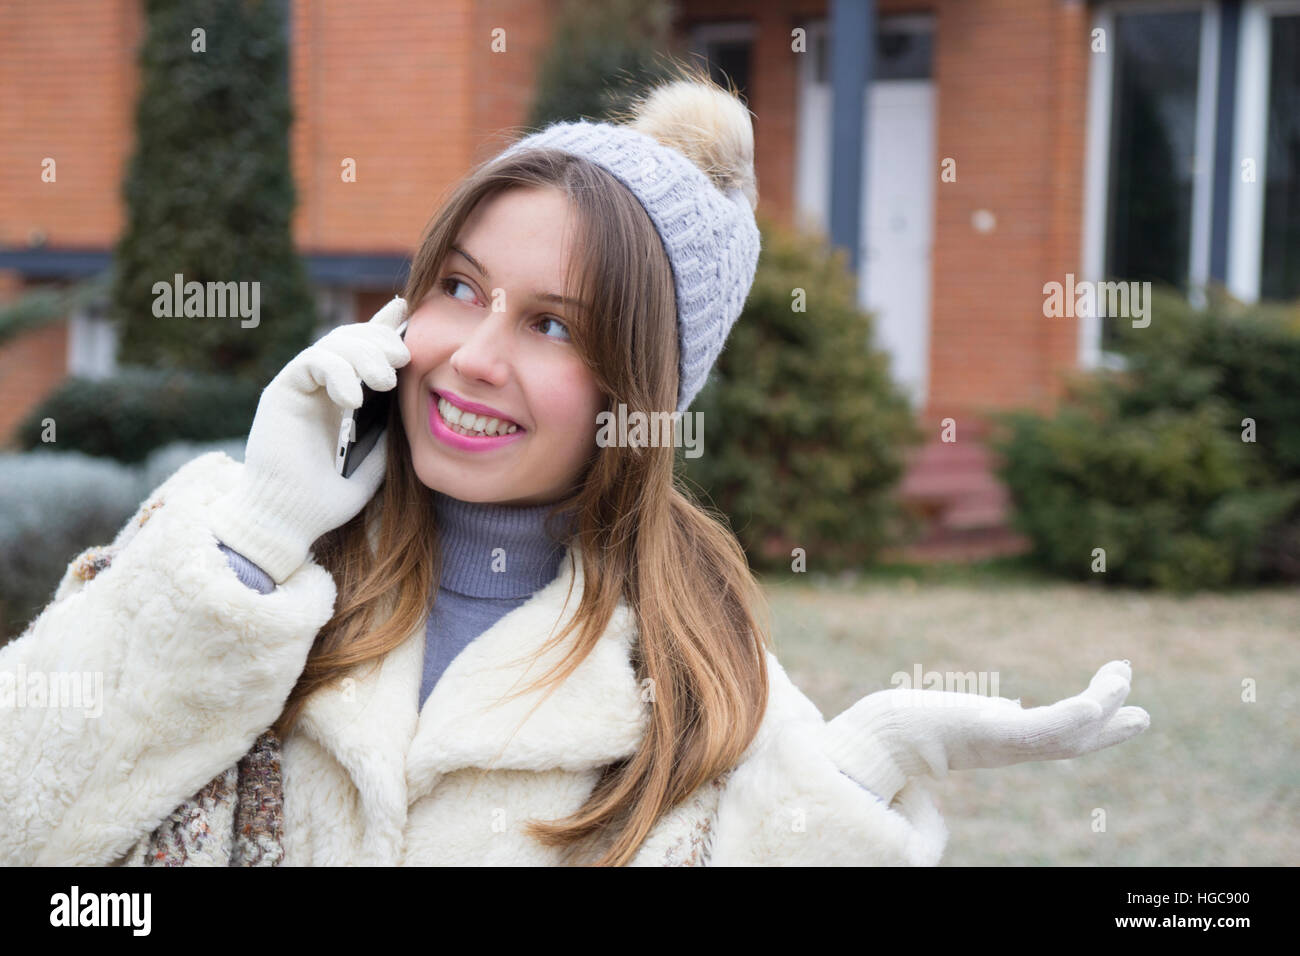 Young girl talking on the mobile phone and walking - Stock Image